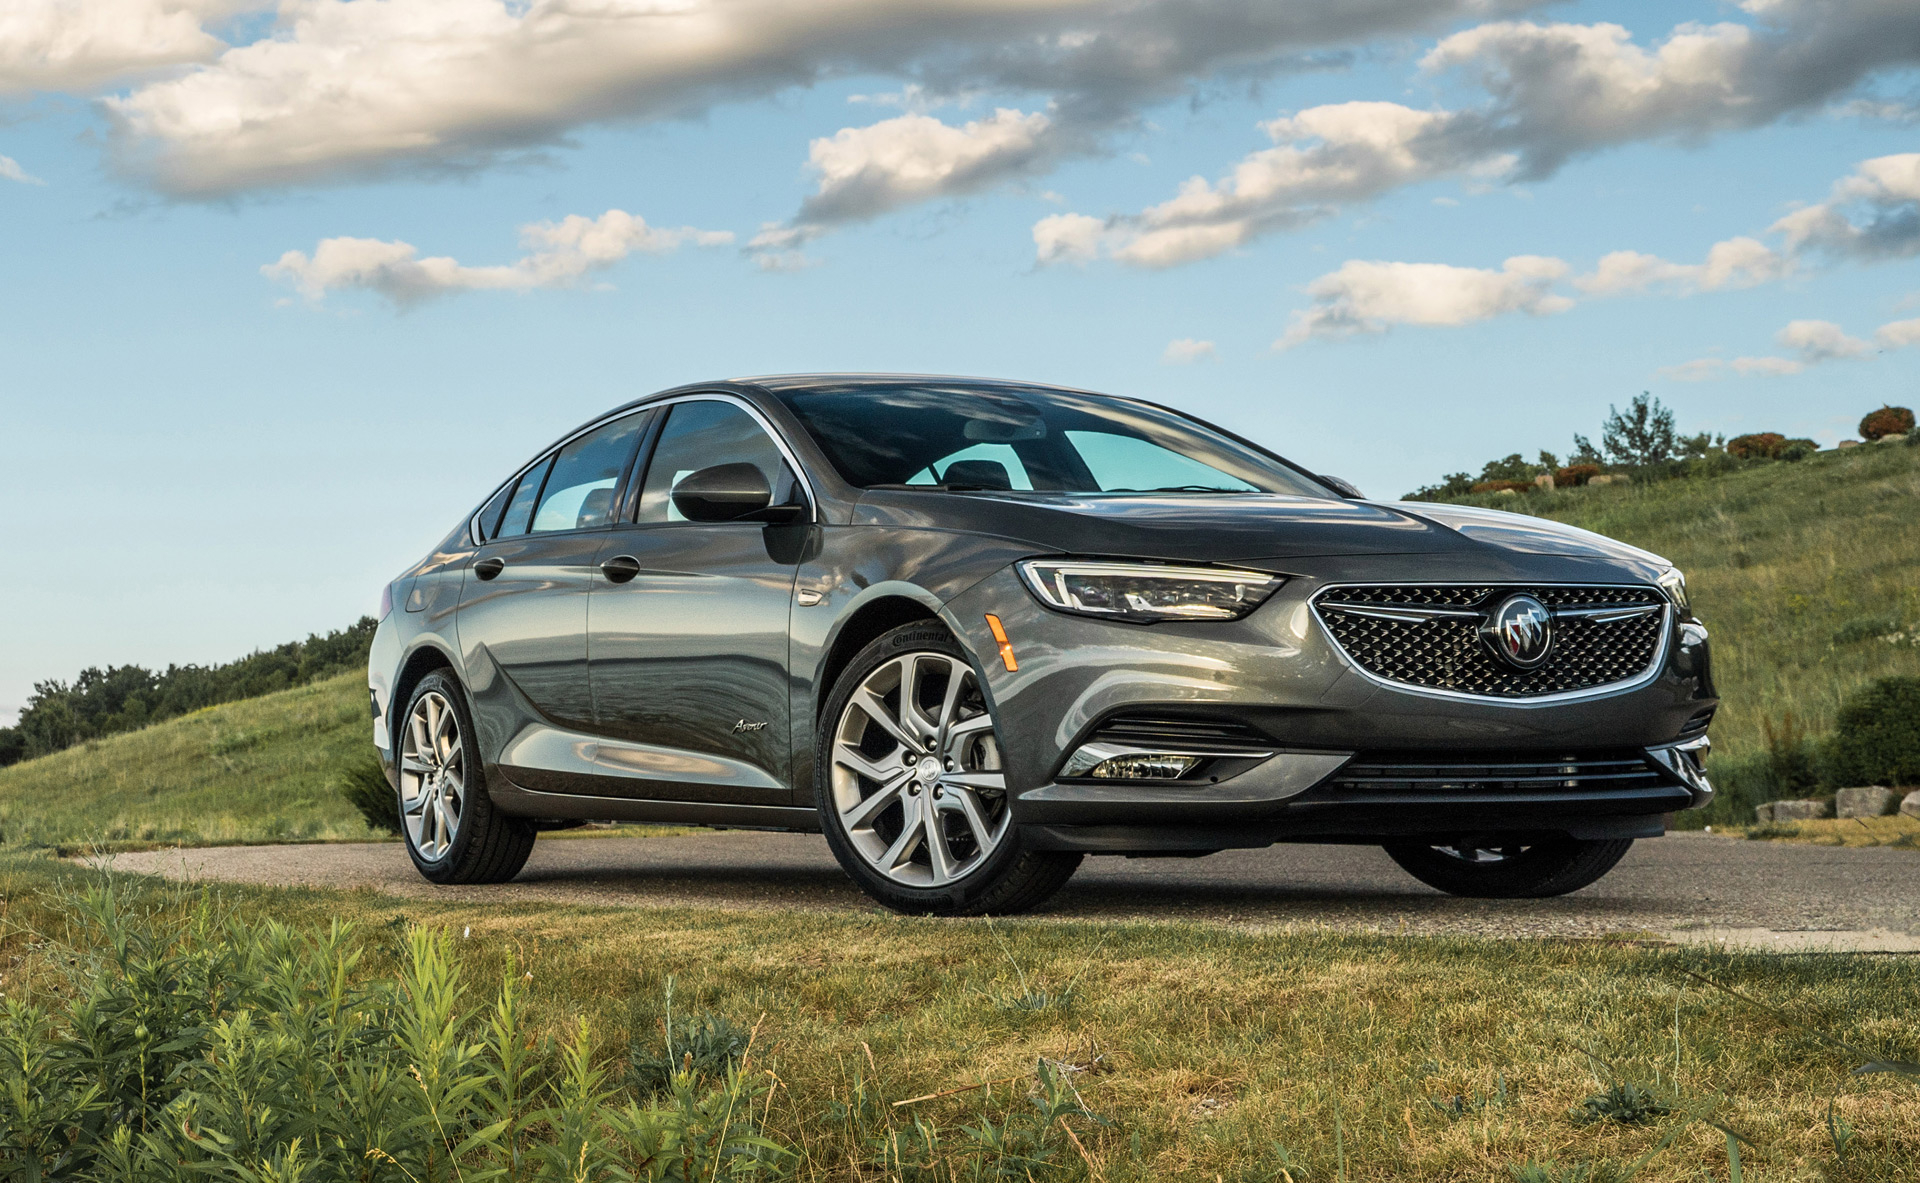 2019 Buick Regal Offered With Upmarket Avenir Trim 2022 Buick Regal Interior, Inventory, Images